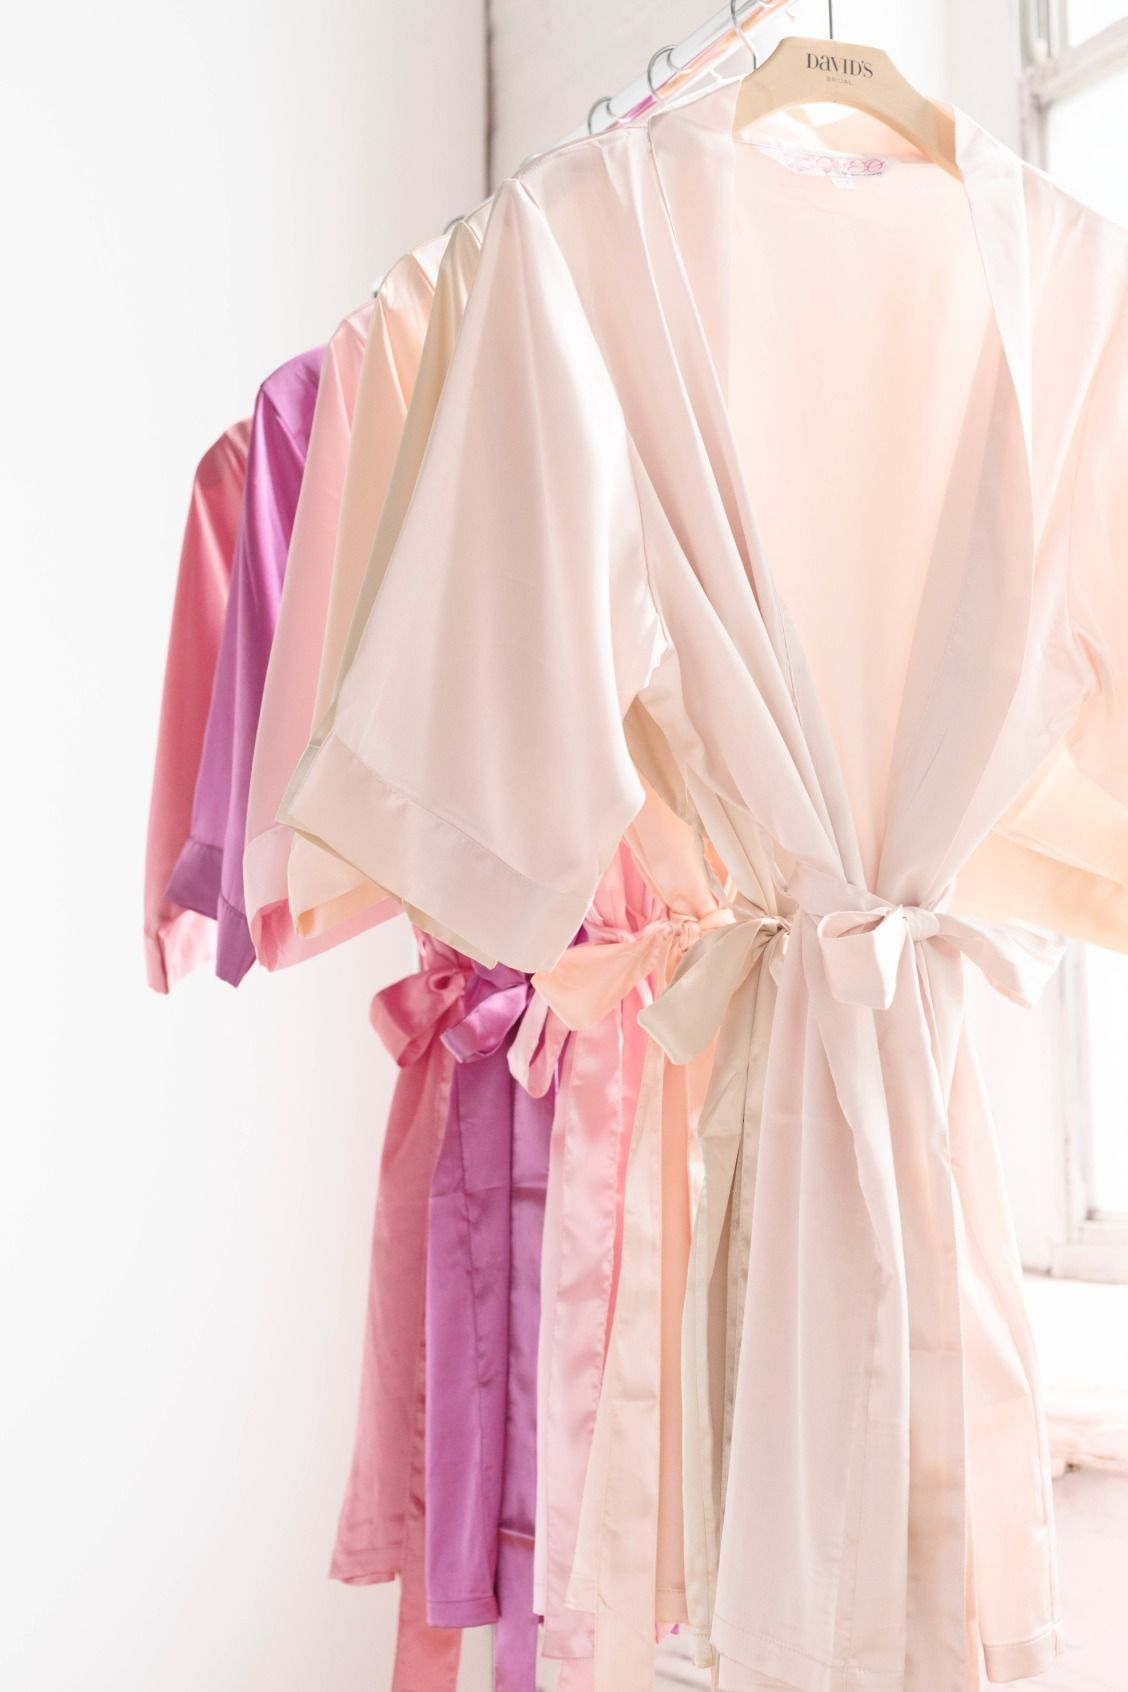 A bridesmaid gift idea? A silky robe for getting ready. Shop colors ...